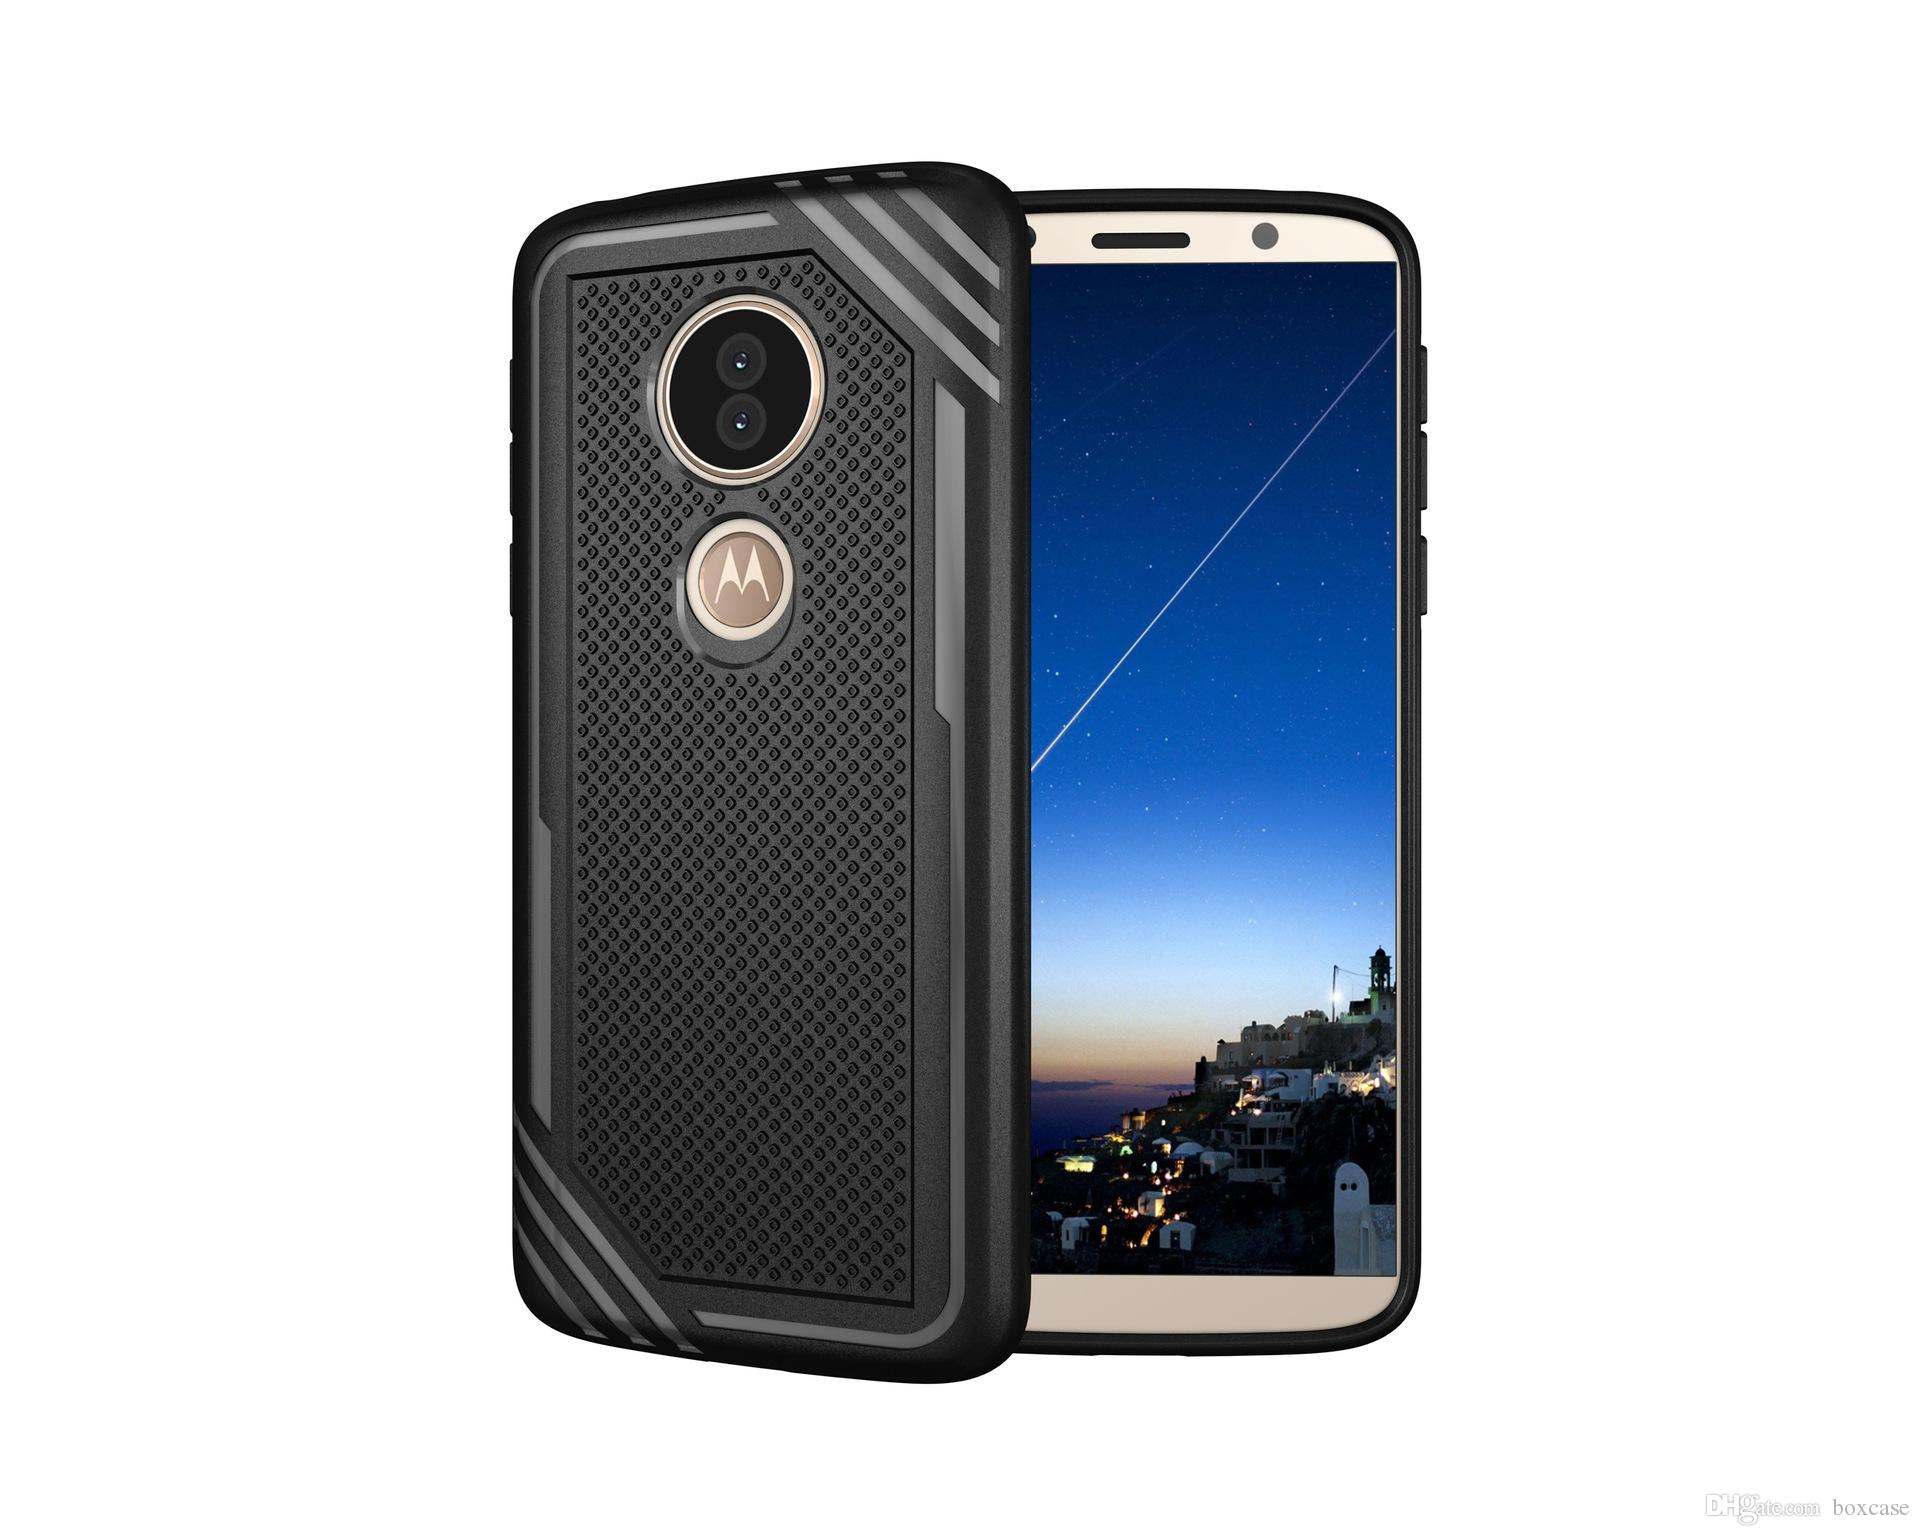 new concept 165e6 0d87a Hard Back Cover for Motorola Moto E5 X5 Z3 Play Case Phone Protective Shell  Shockproof Heavy Duty Rugged Armor